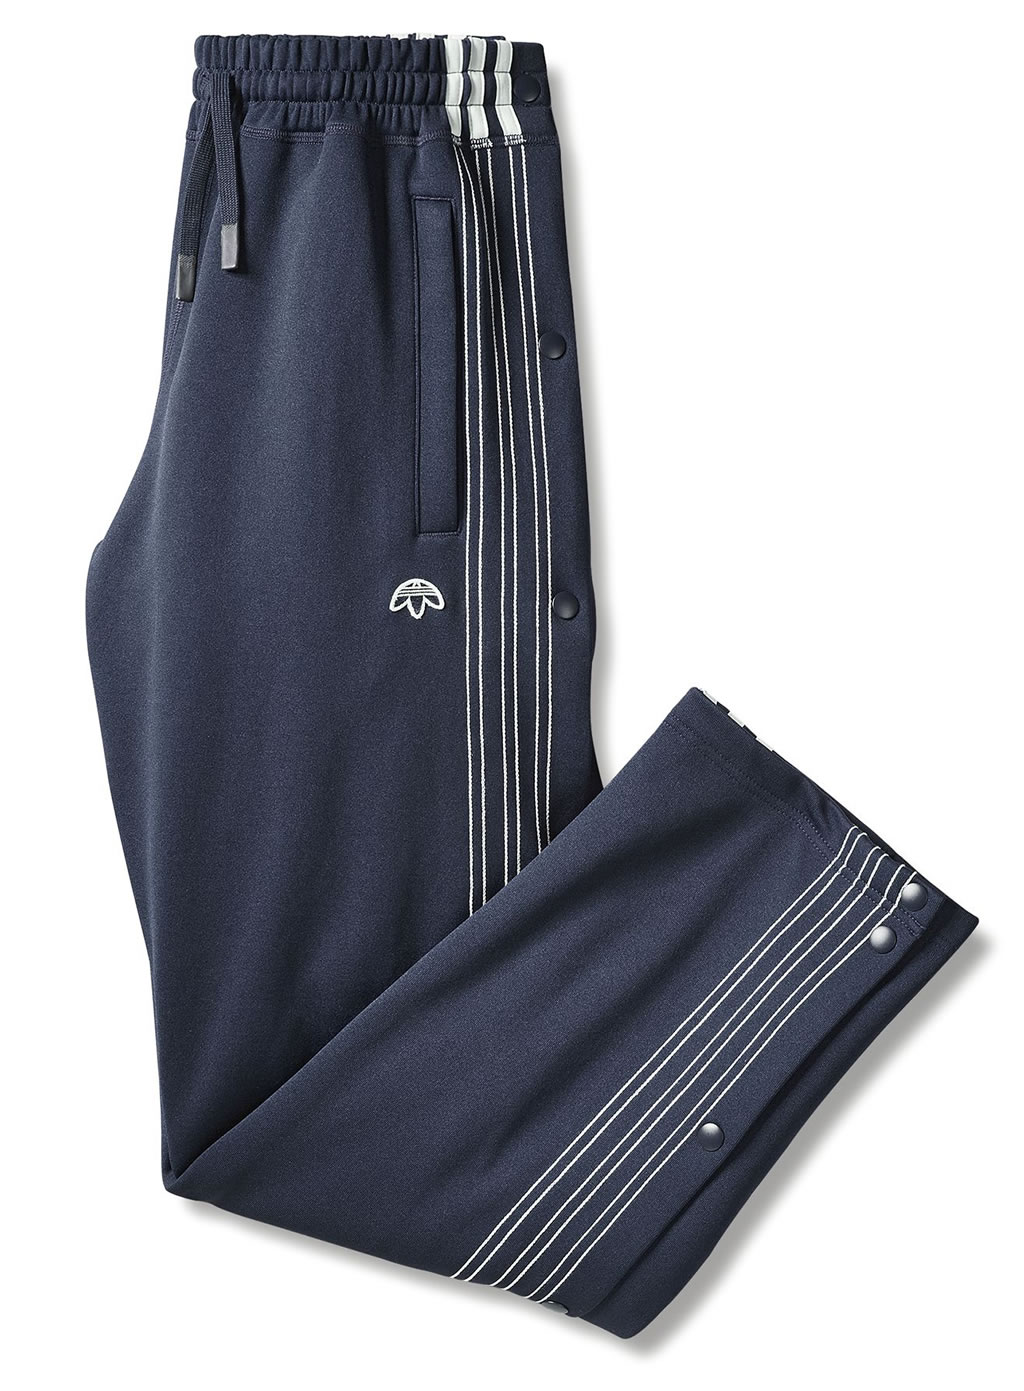 Blue AW Track Pants by Adidas Originals